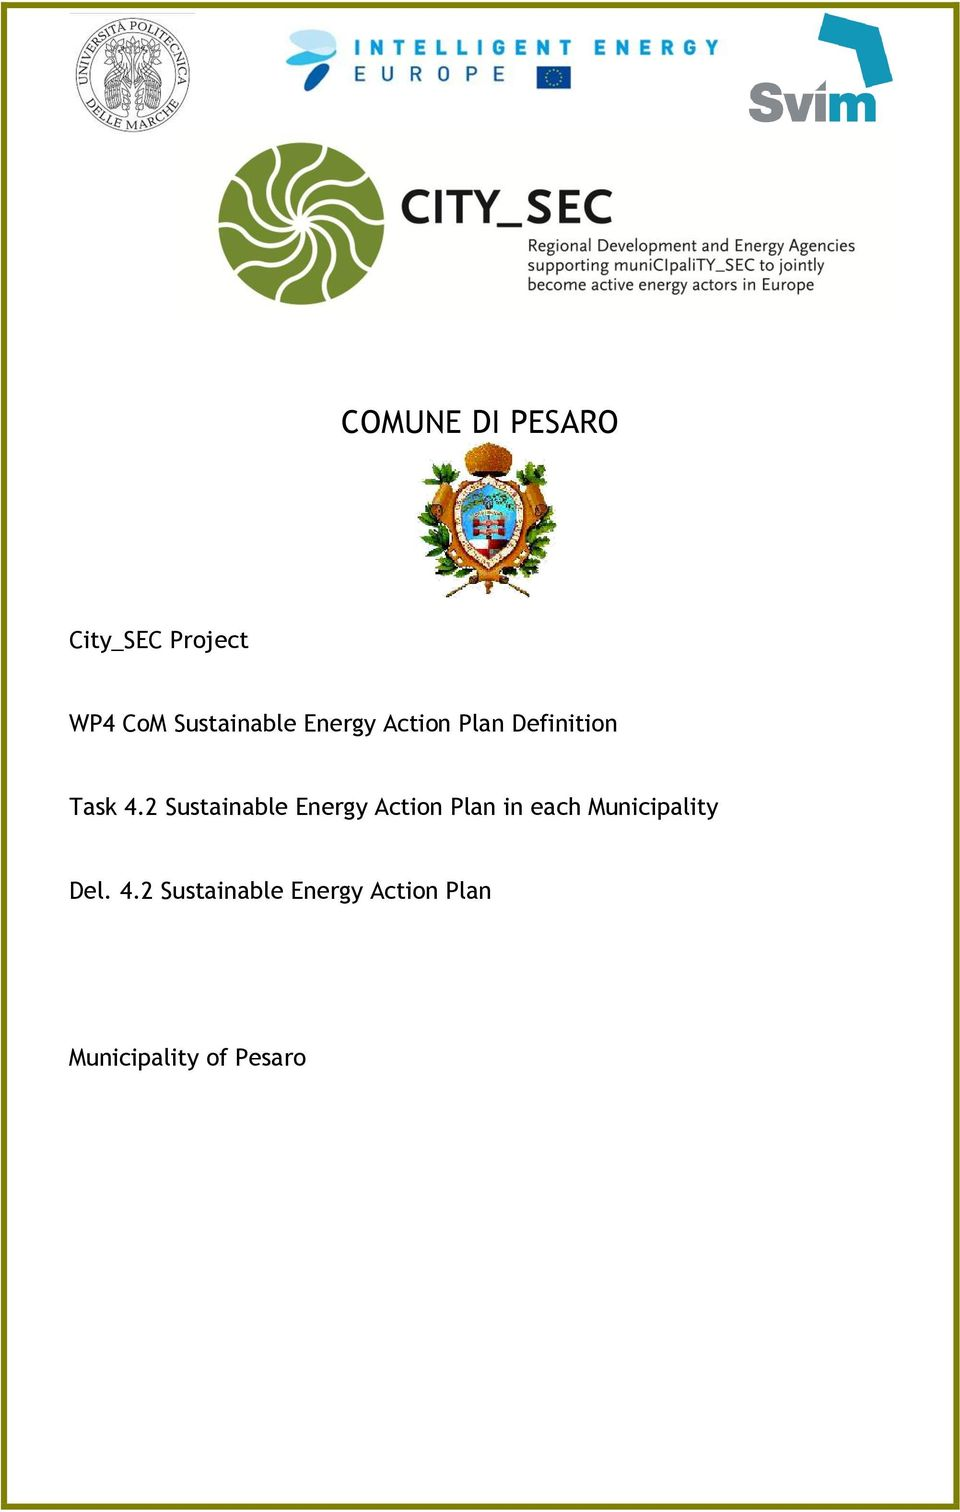 2 Sustainable Energy Action Plan in each